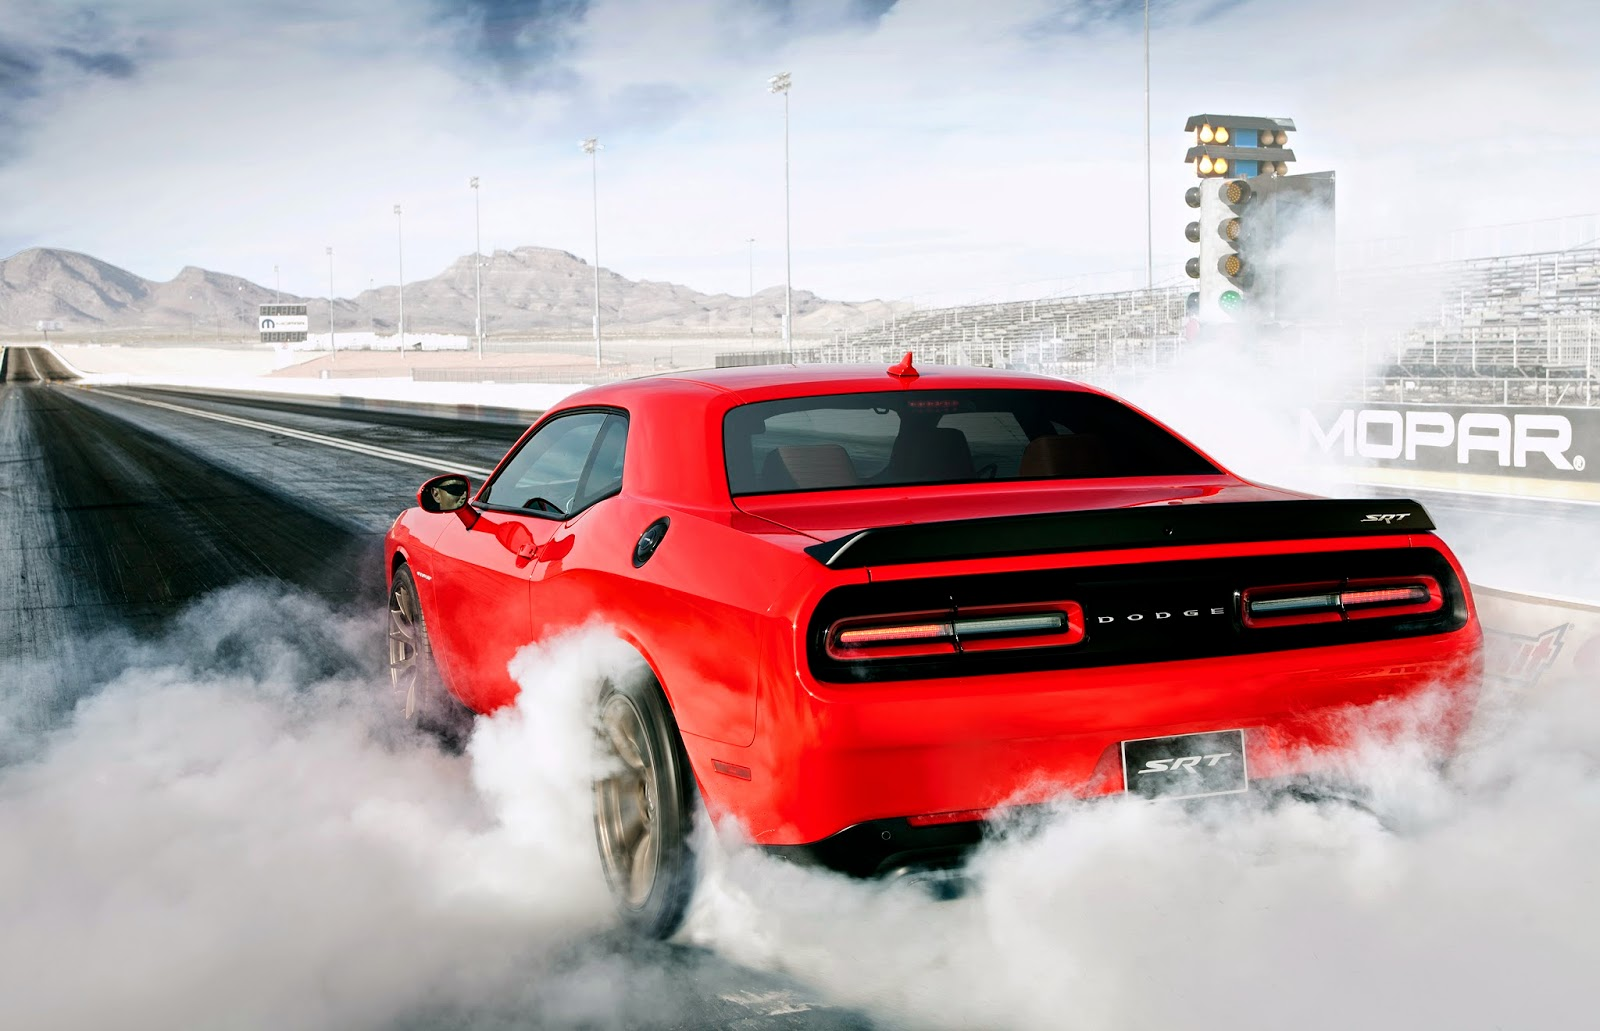 The All New 2015 Dodge Challenger SRT With 707 Horsepower HEMI Hellcat  Engine Delivers Unrivaled Performance, Race Inspired Interior And New  Technologies ...